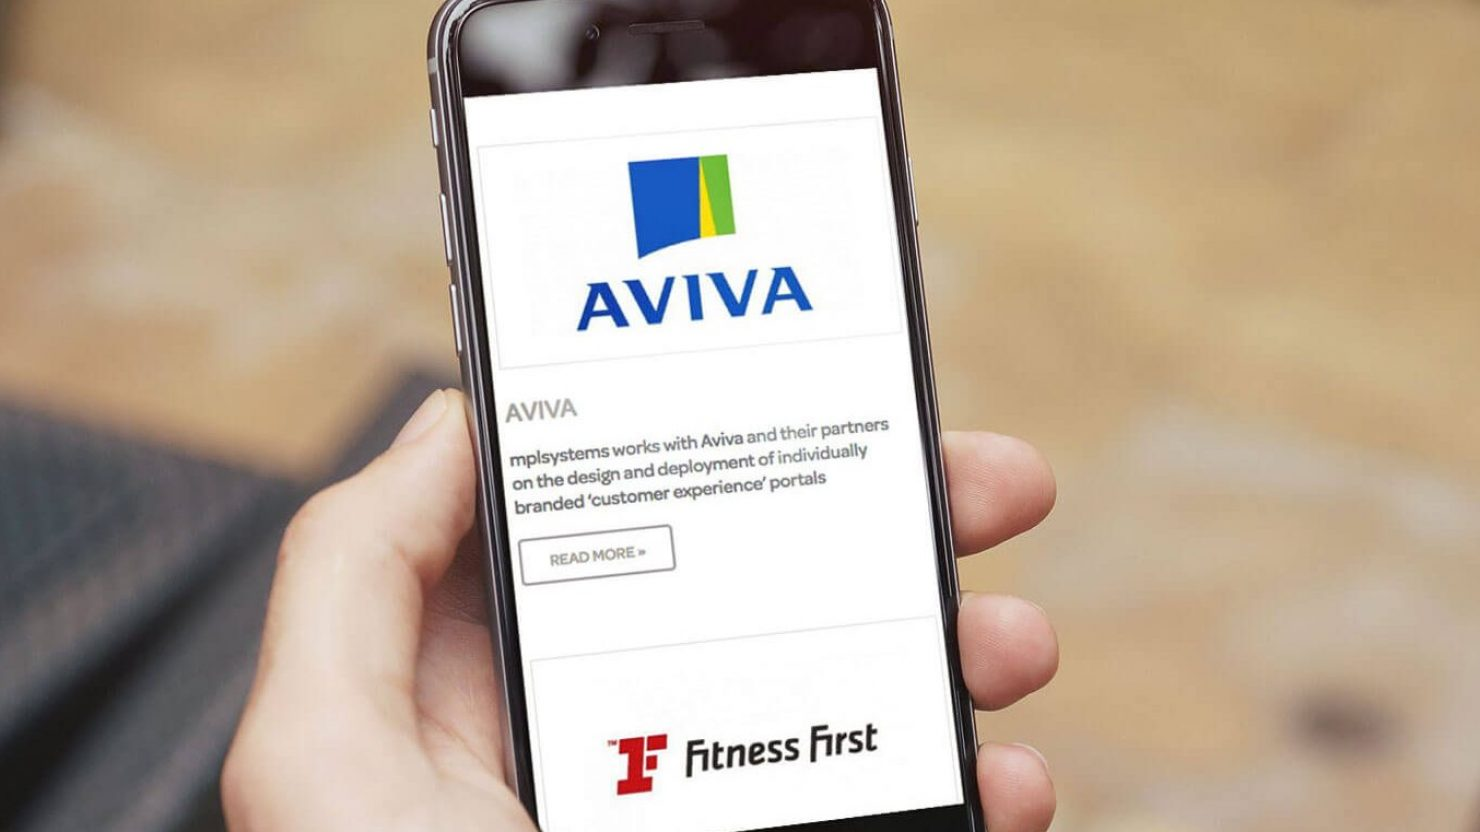 iPhone showing website design and branding for MPL Systems with Aviva and Fitness First logos